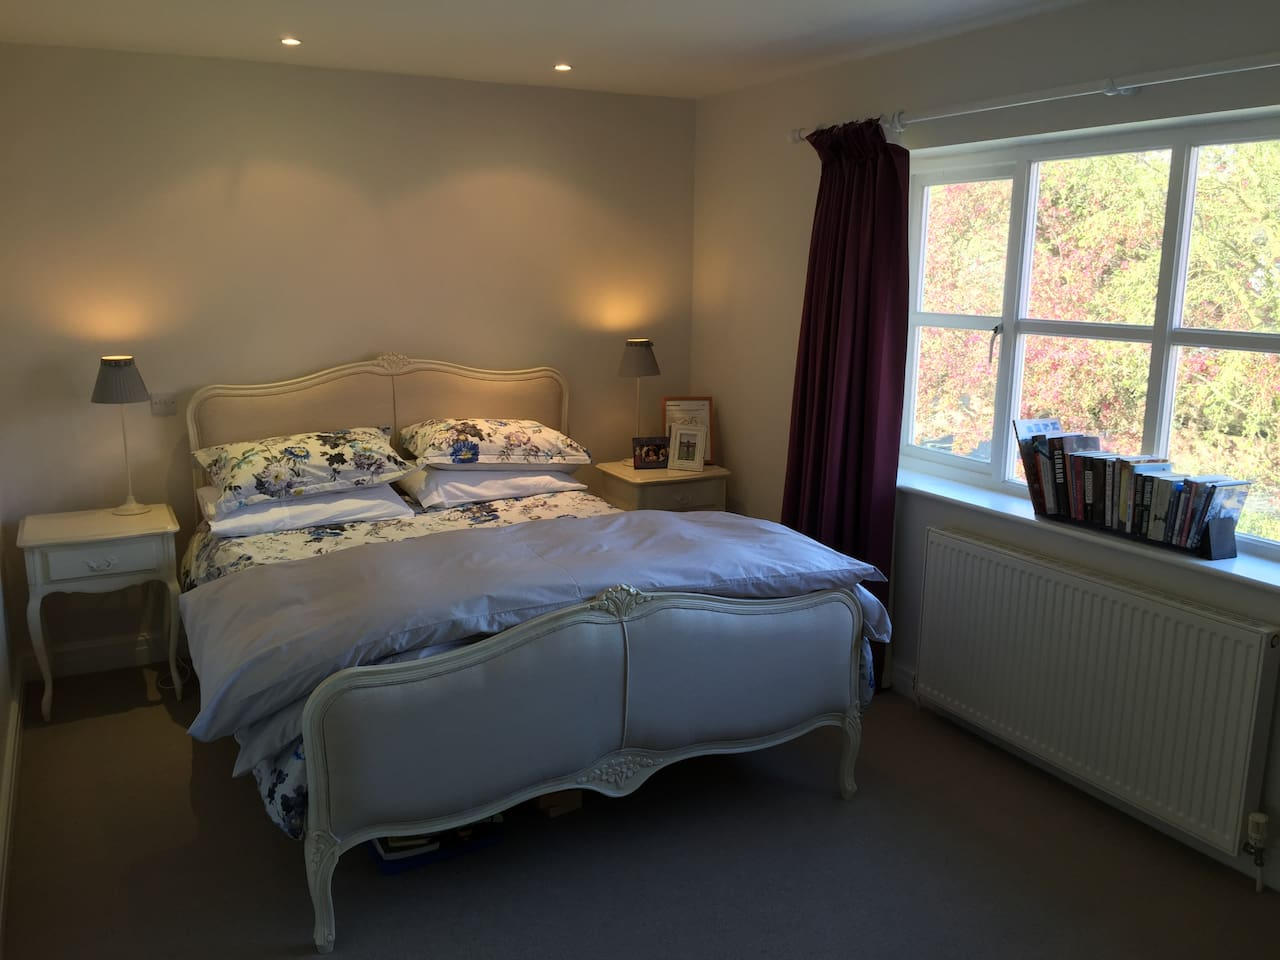 King size Laura Ashley Bed